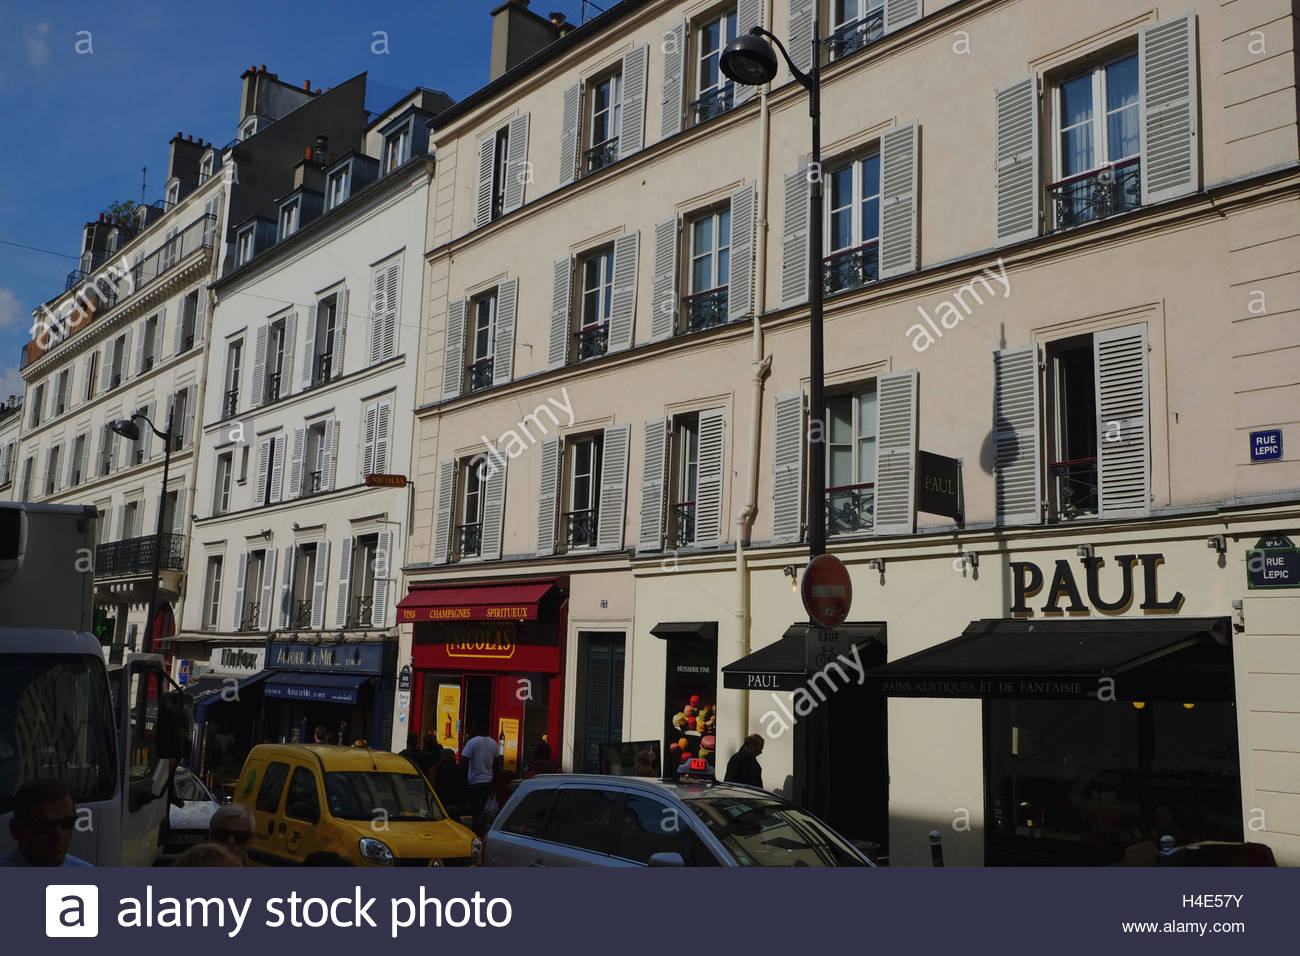 Delivery vans parked outside white buildings with shuttered windows and shops on the ground level along Rue Lepic - Stock Image